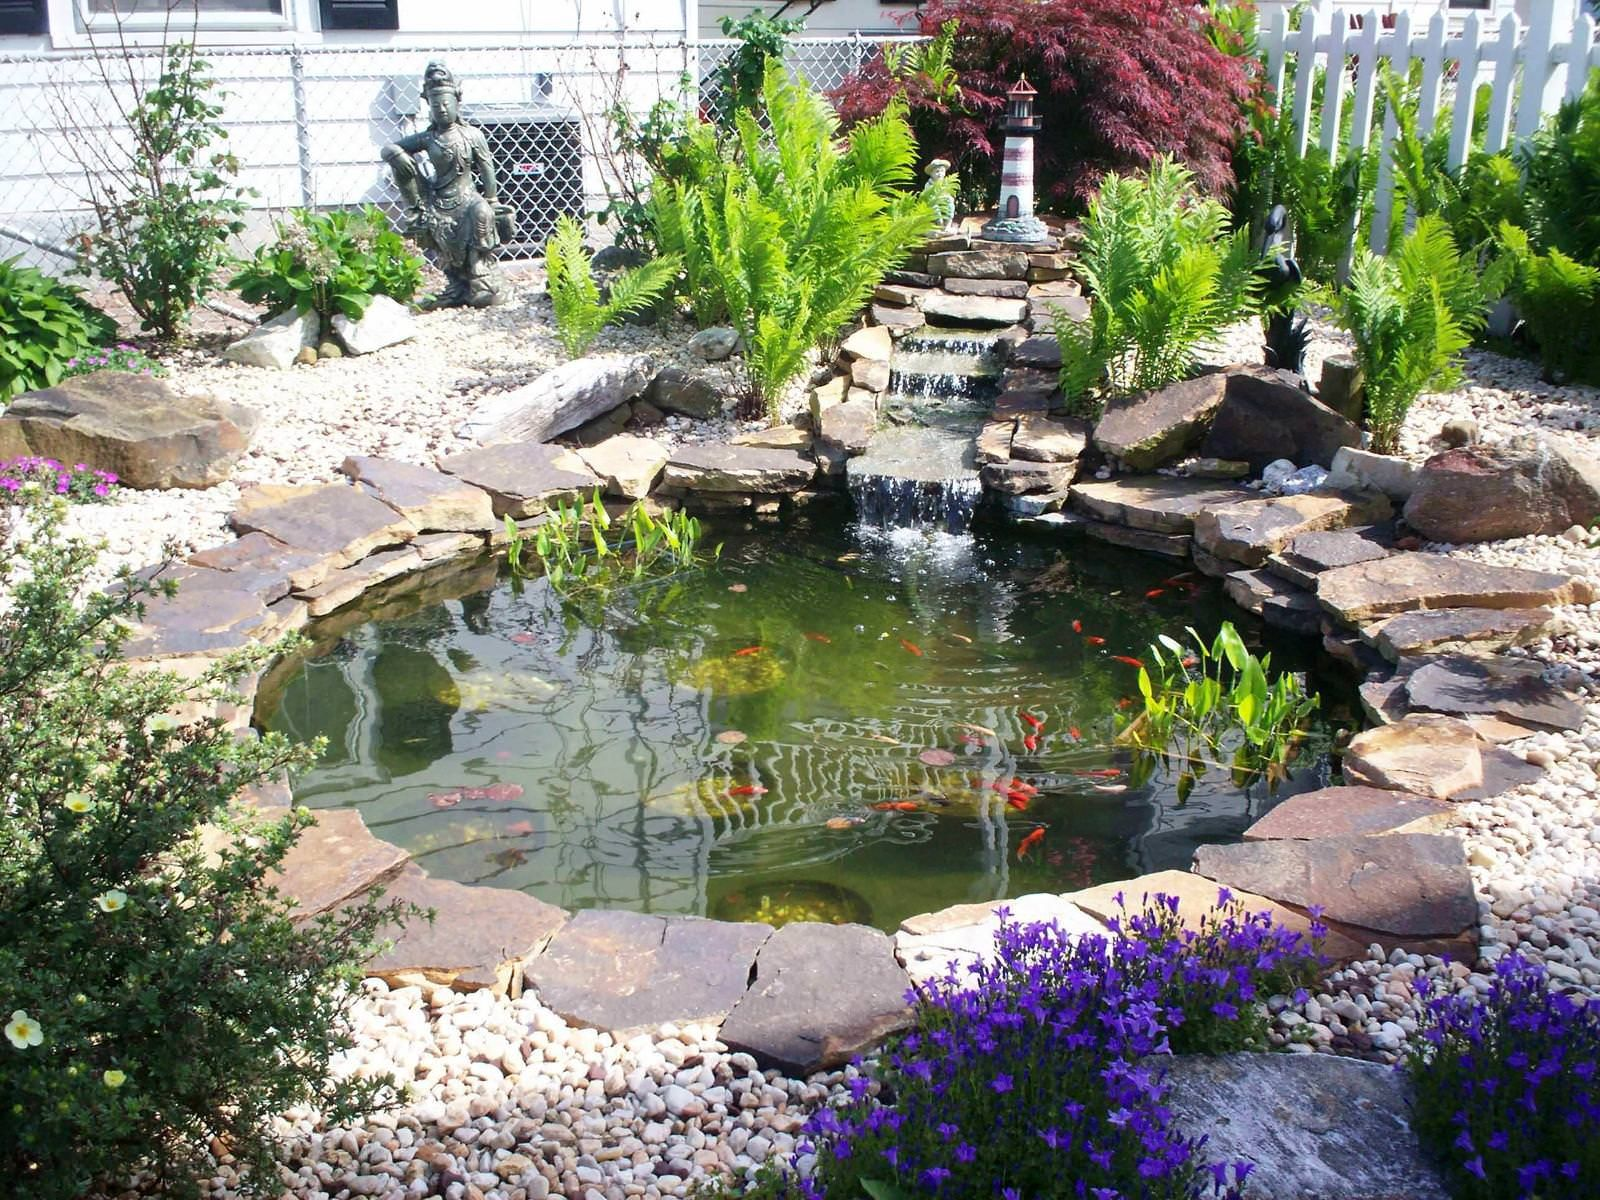 Small garden or backyard aquarium ideas practic ideas for Fish pond landscape ideas